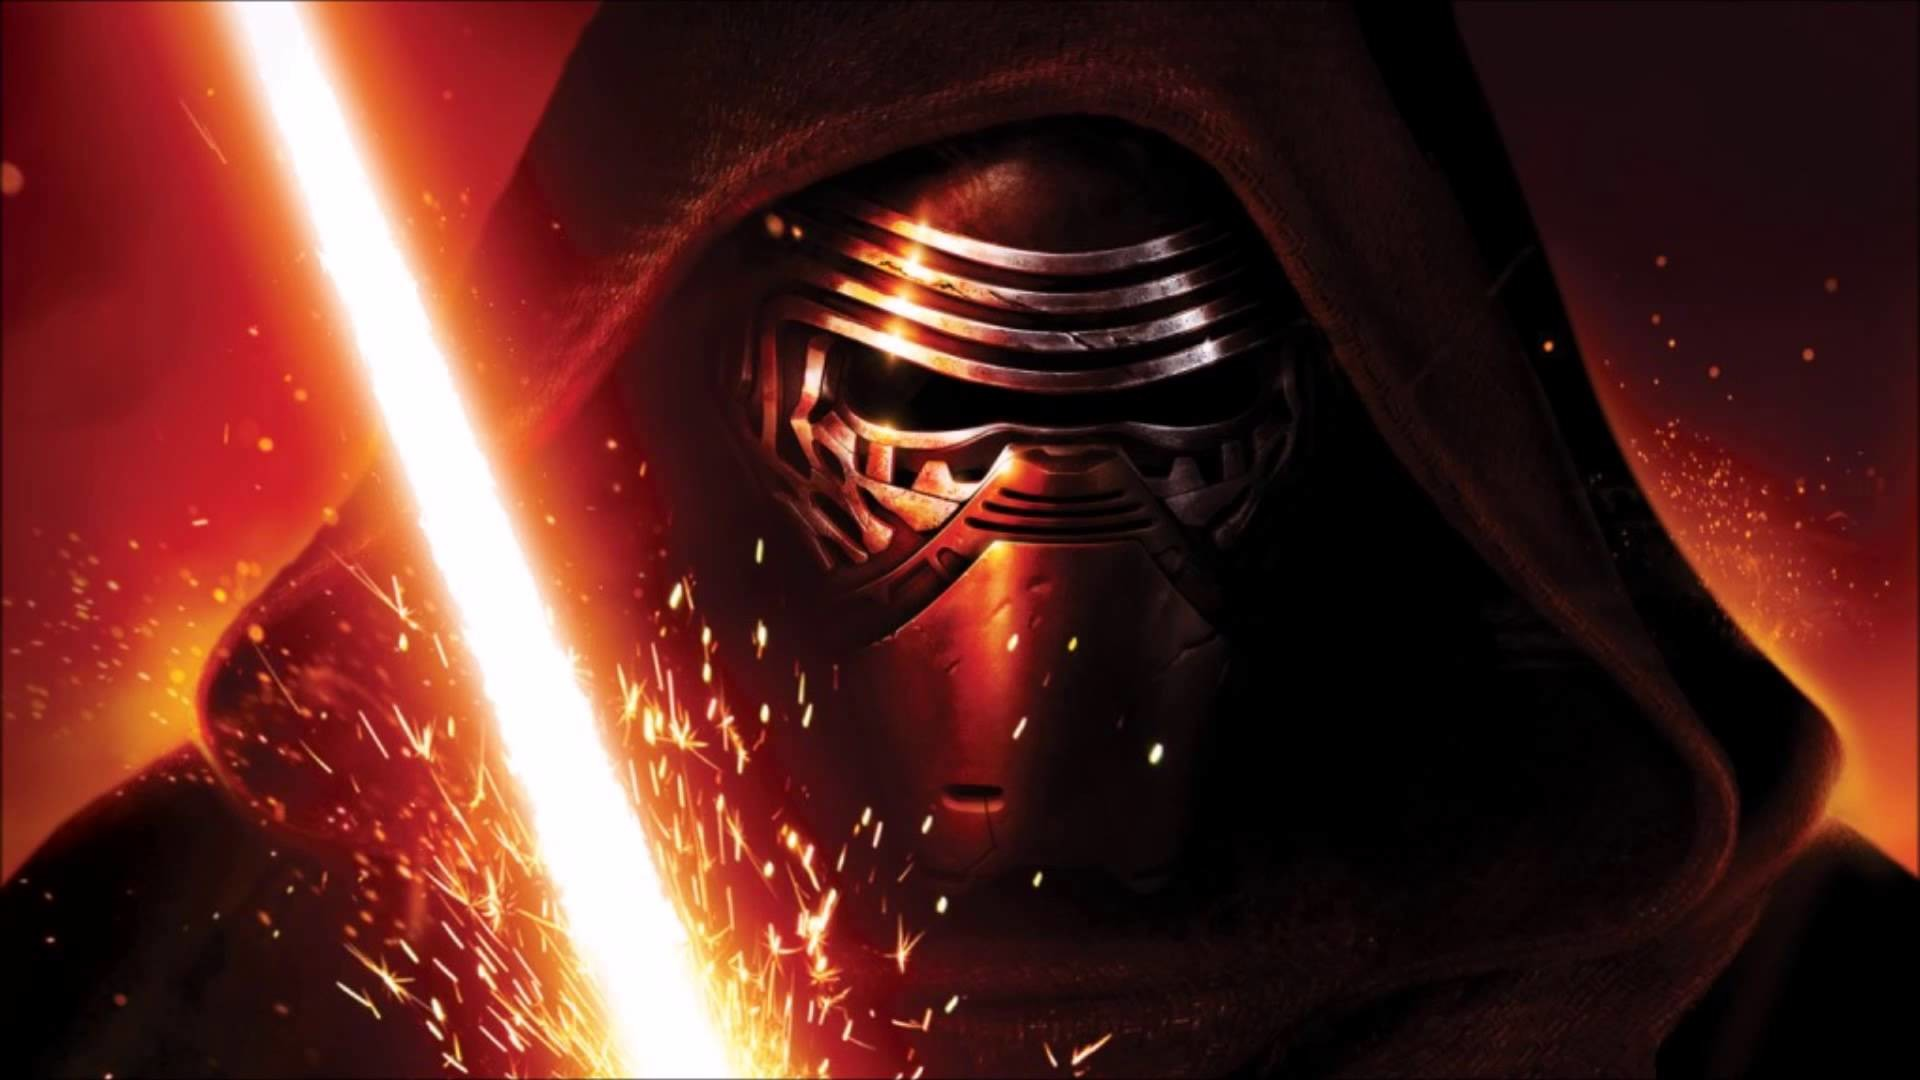 Star Wars: The Force Awakens – The Voice of Kylo Ren?